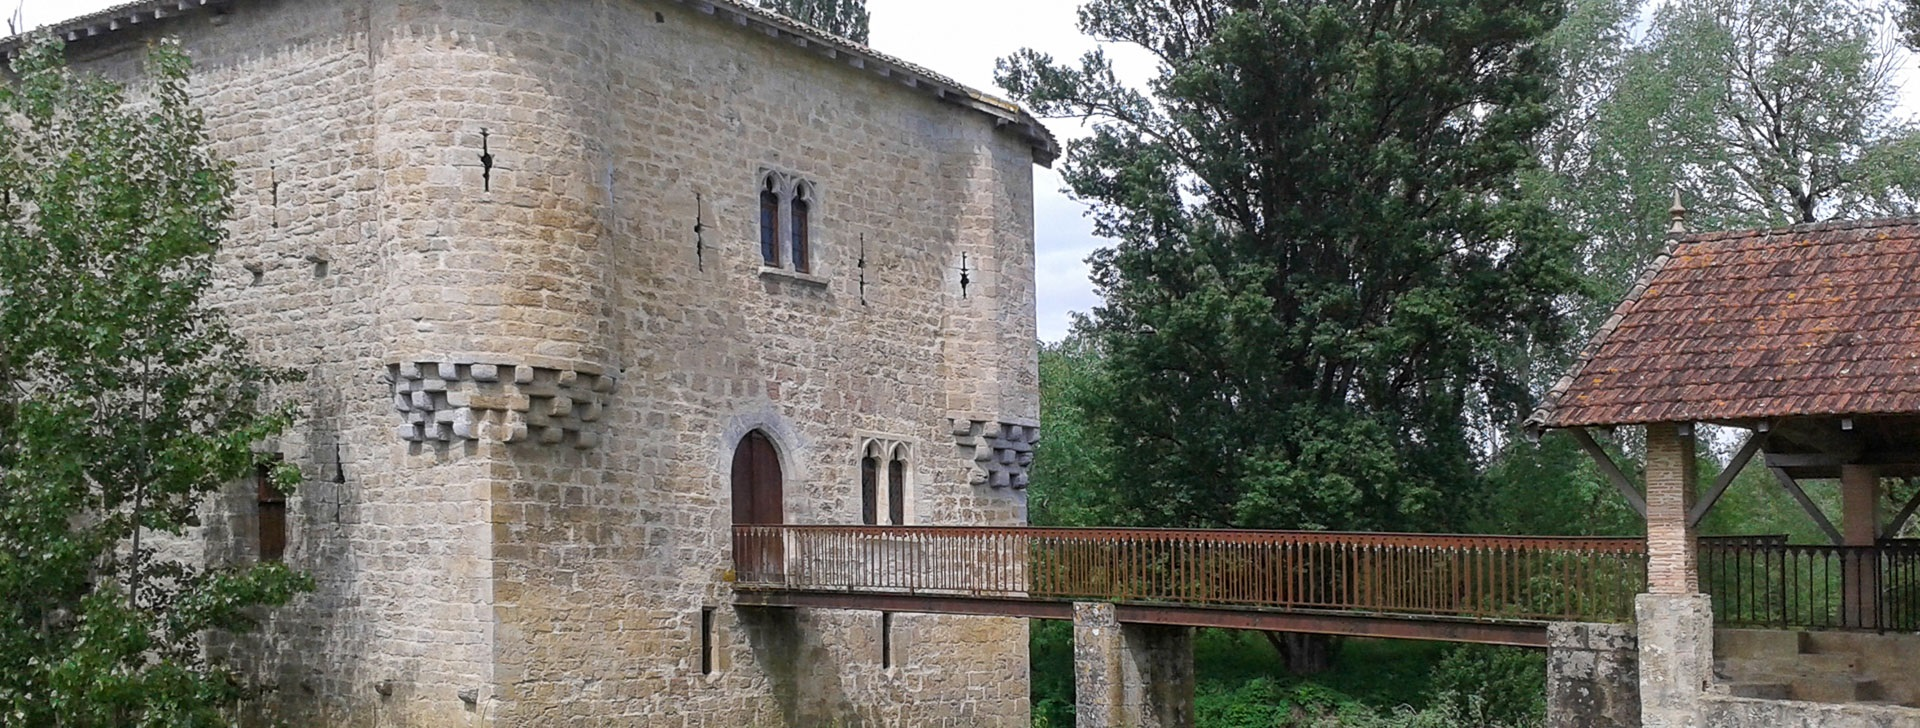 Moulin de Bagas. Photo Michel Sahut